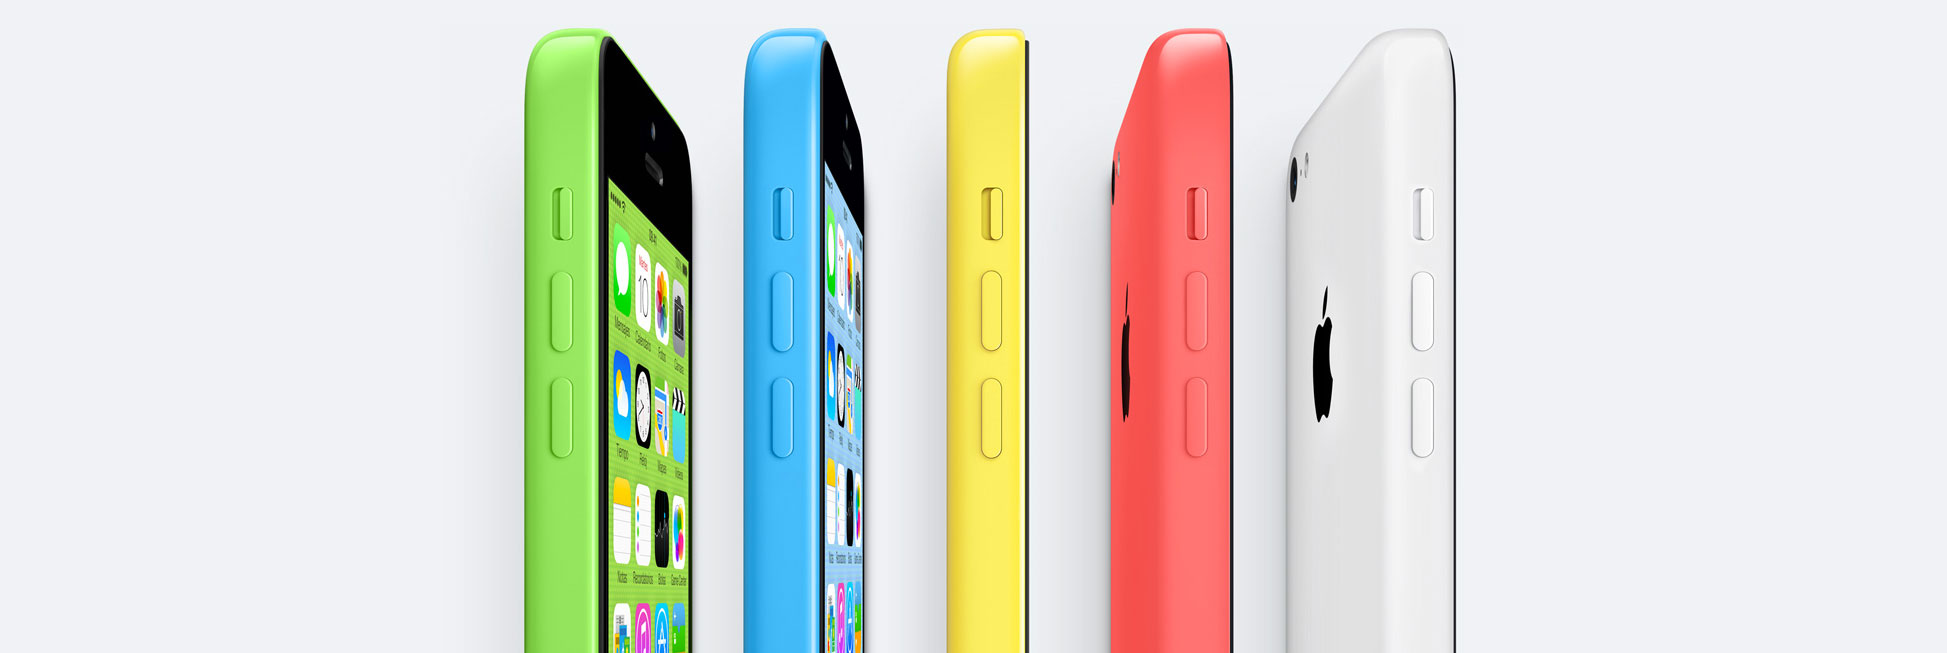 how to jailbreak an iphone 5c iphone 5c appsystem 18892